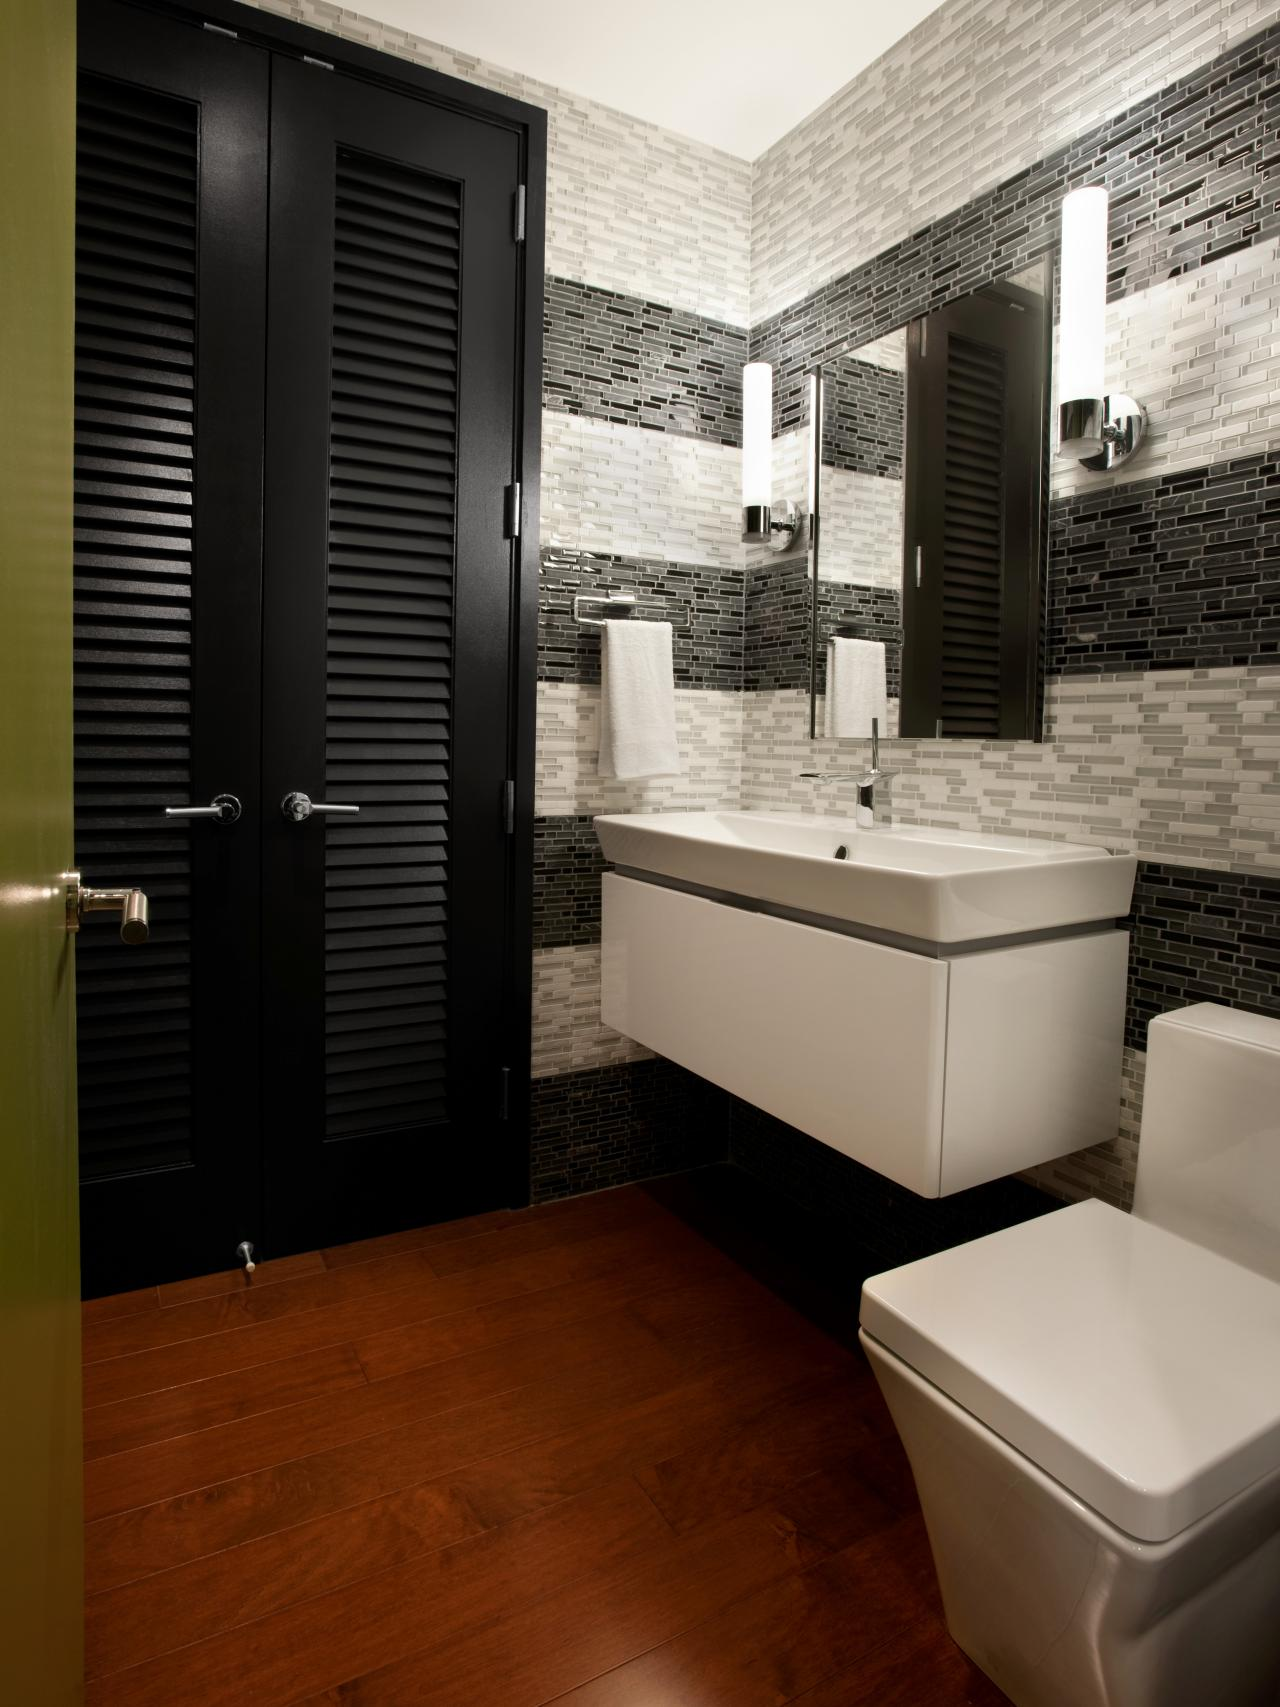 Modern bathroom design ideas pictures tips from hgtv hgtv for Modern bathroom design small